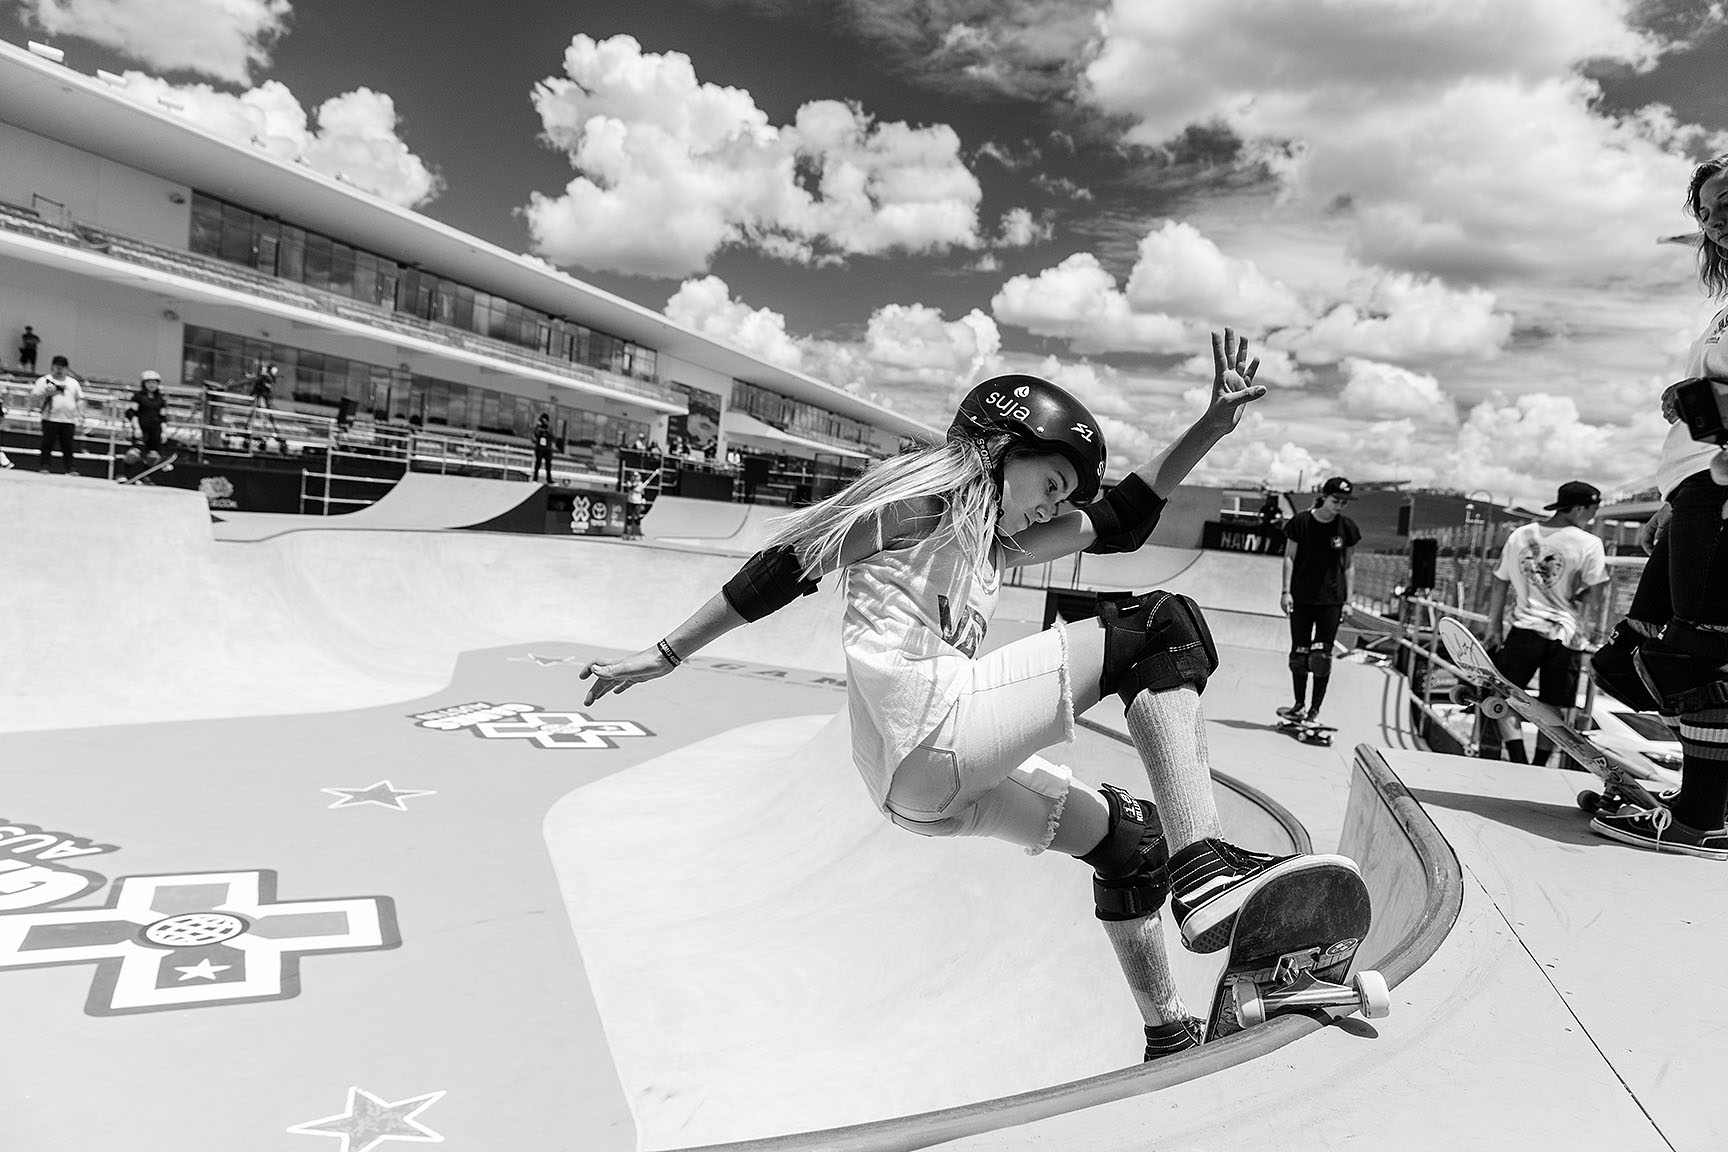 At 11 years, 10 months old, Brighton Zeuner will become the youngest female competitor in X Games history when she drops in during the Women's Park event on Saturday. Don't let her age and size fool you: She recently finished fourth at her first pro contest, the Vans Girls Combi Pool Classic in January, and then took second at Vert Attack in April. She's definitely a contender for the podium.